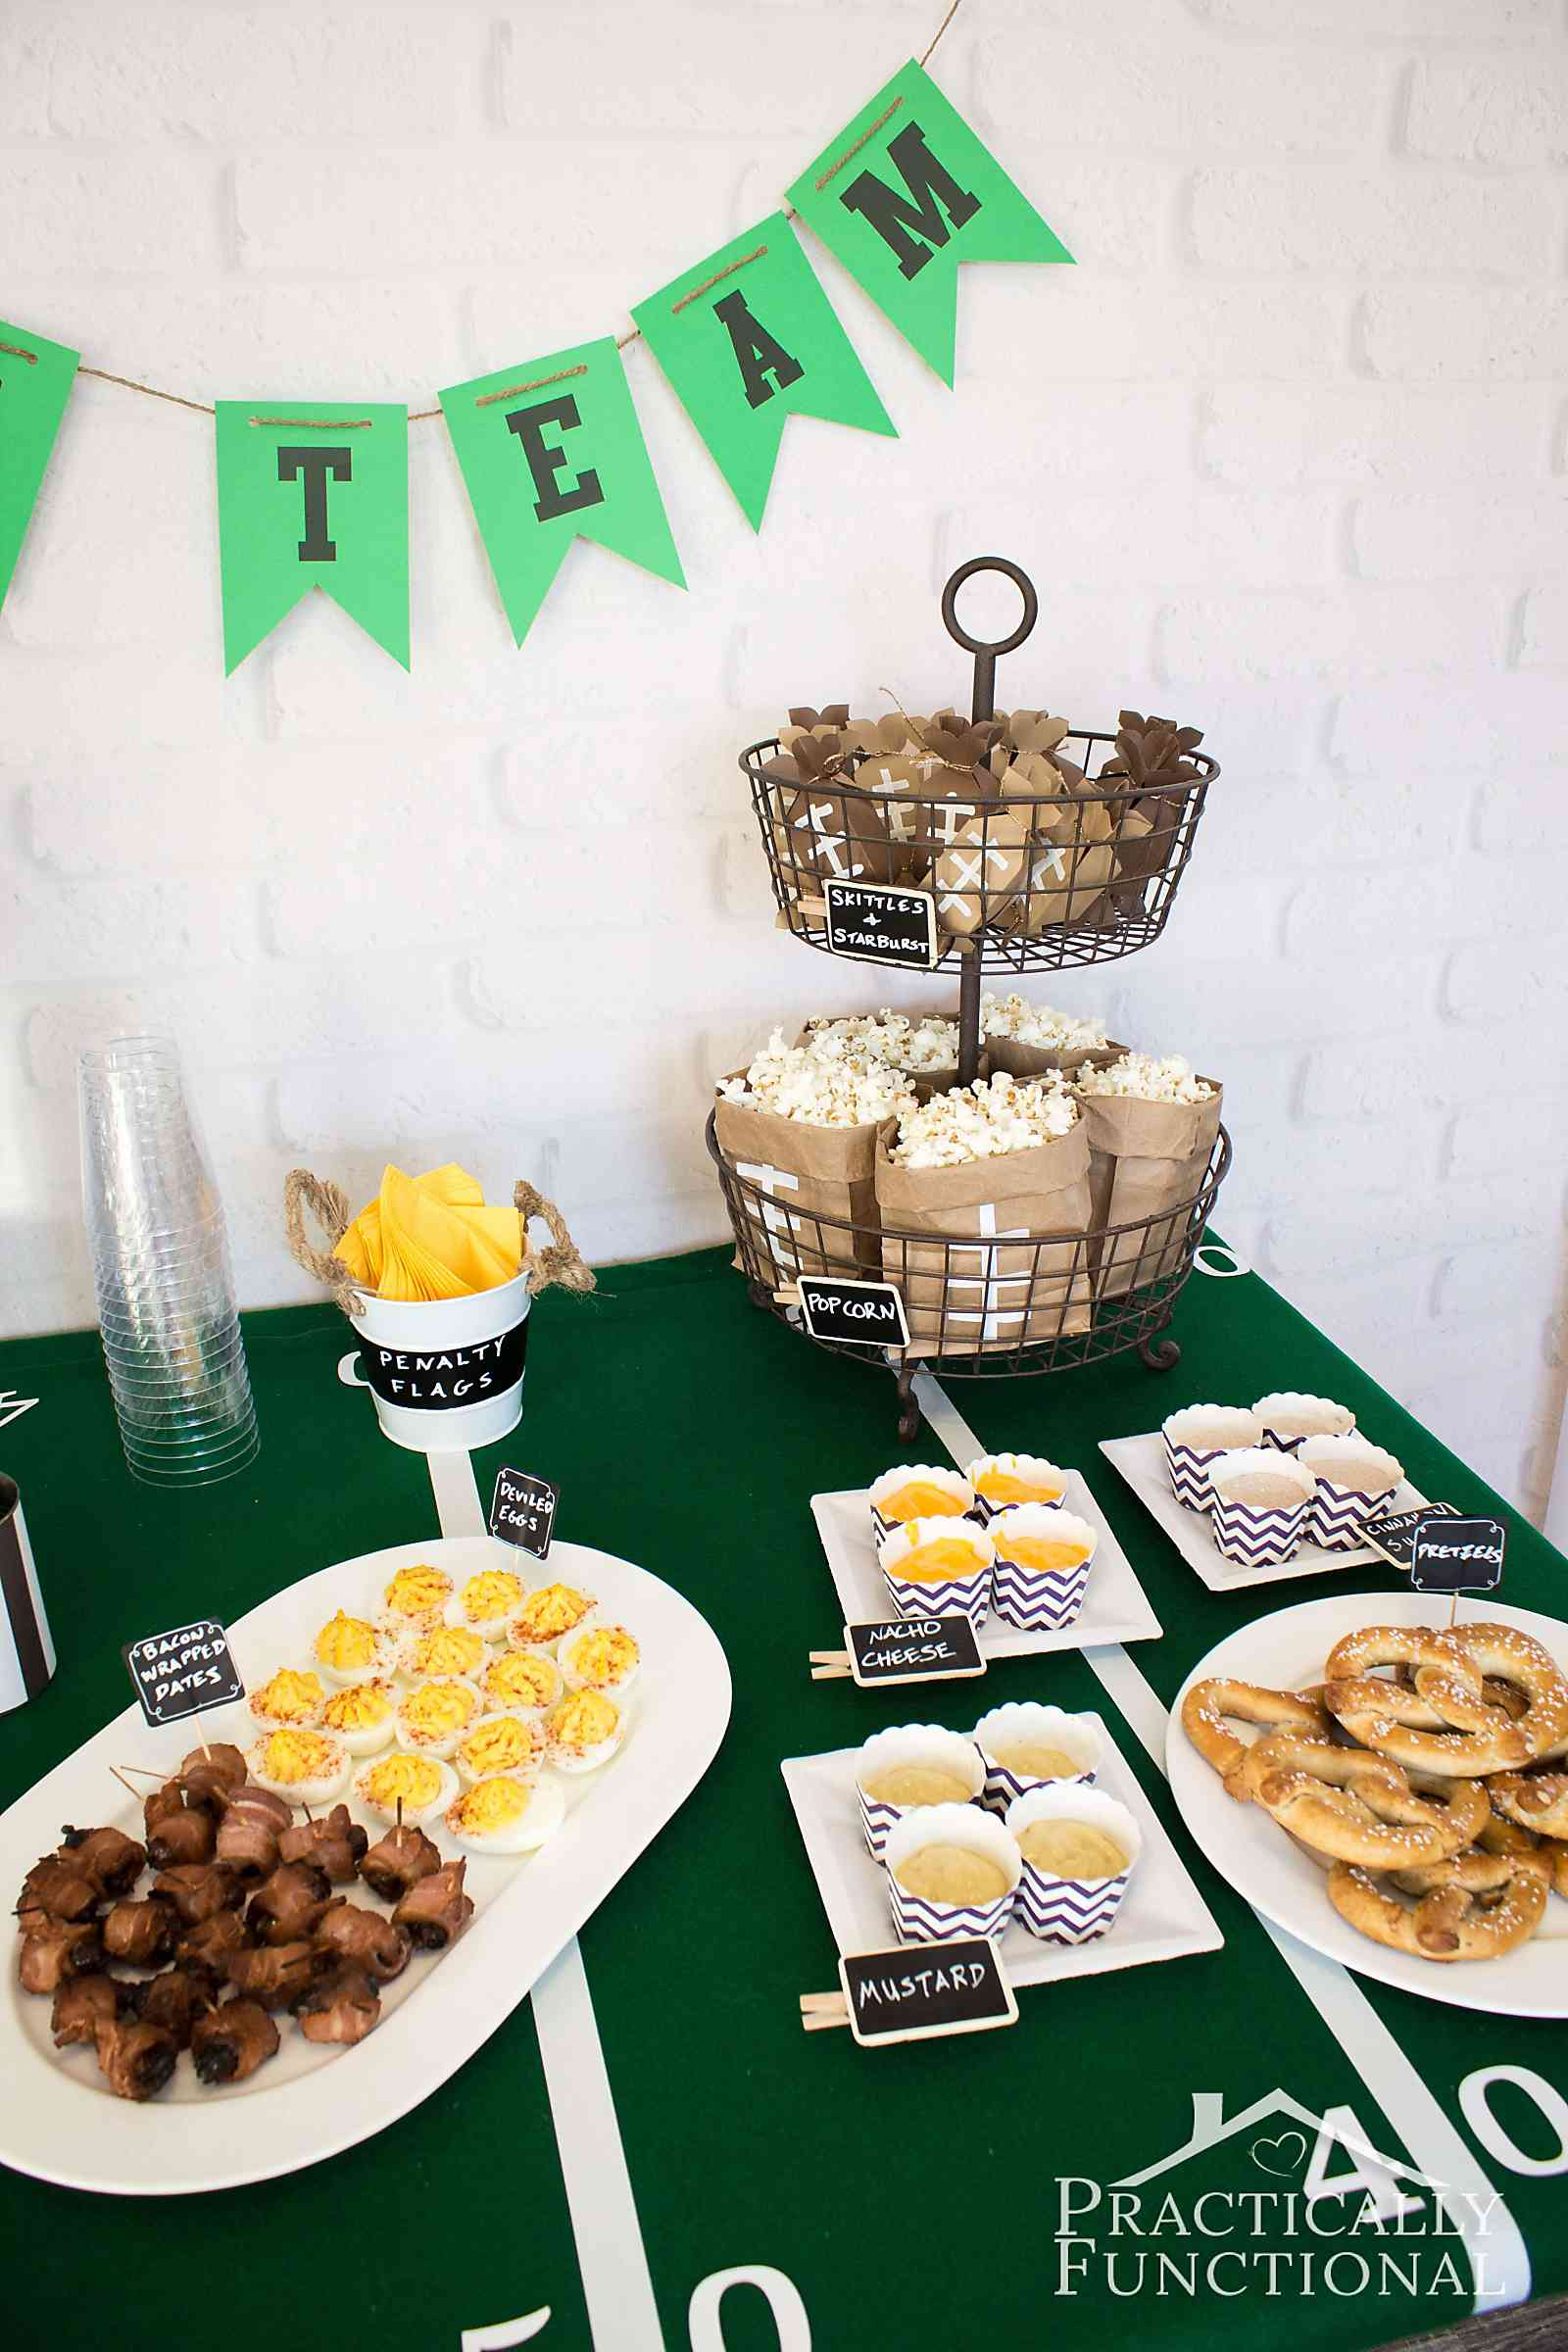 11 Super Bowl Party Ideas That Will Score Major Hostess Points 11 Super Bowl Party Ideas That Will Score Major Hostess Points new photo